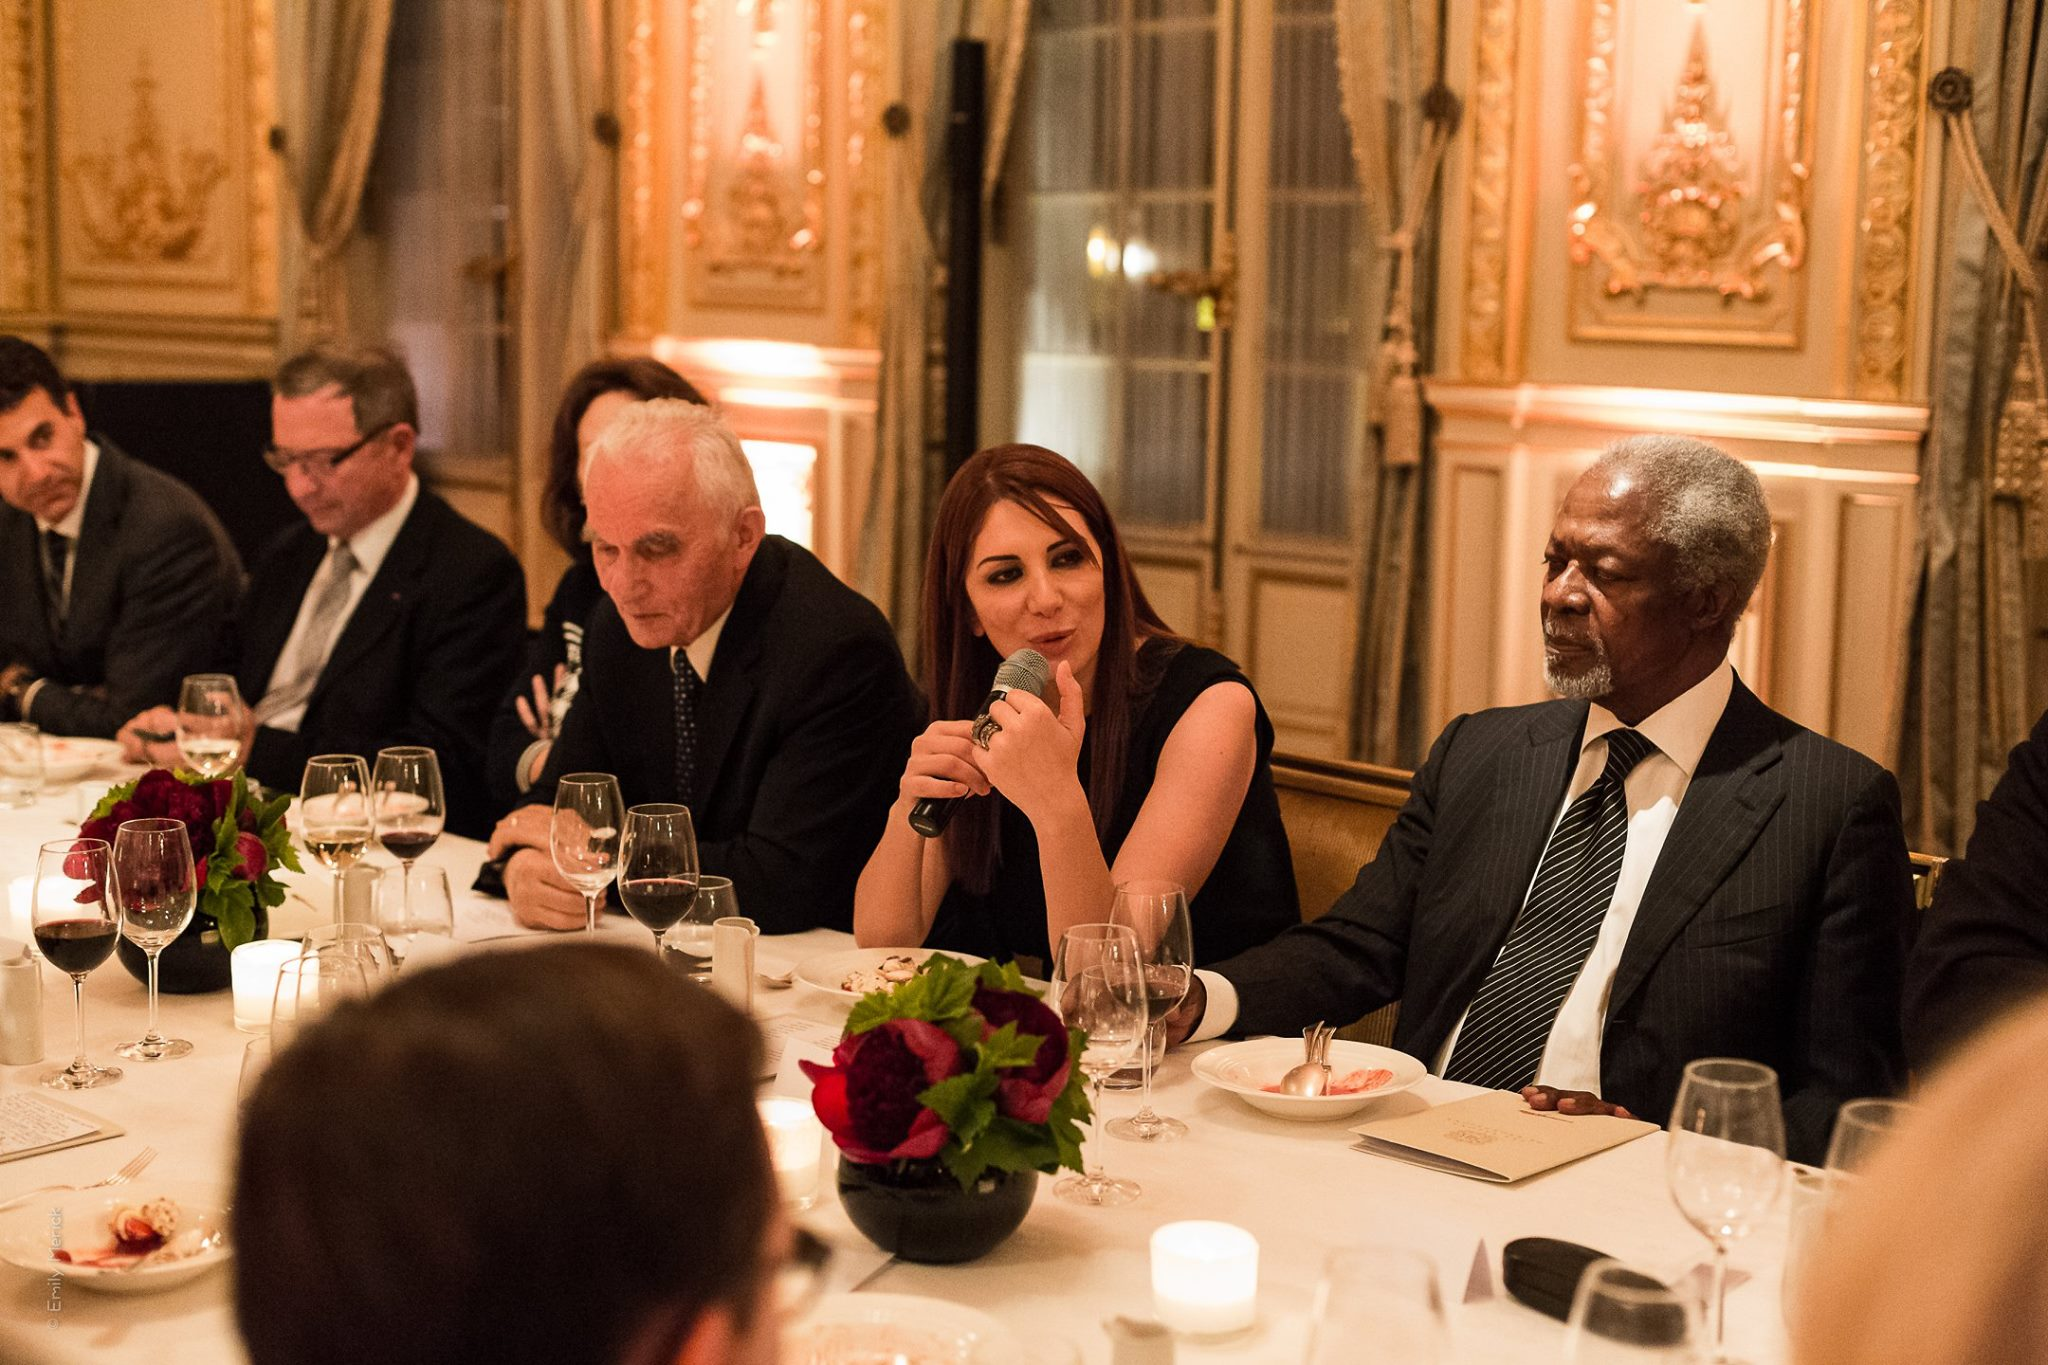 Randa-Kassis-between-Kofi-Annan-and-Yasar-Yakis-former-Foreign-Affairs-Minister-of-Turkey-Terzi.-Conference-CPFA-nuclear-security-6th-June-Paris